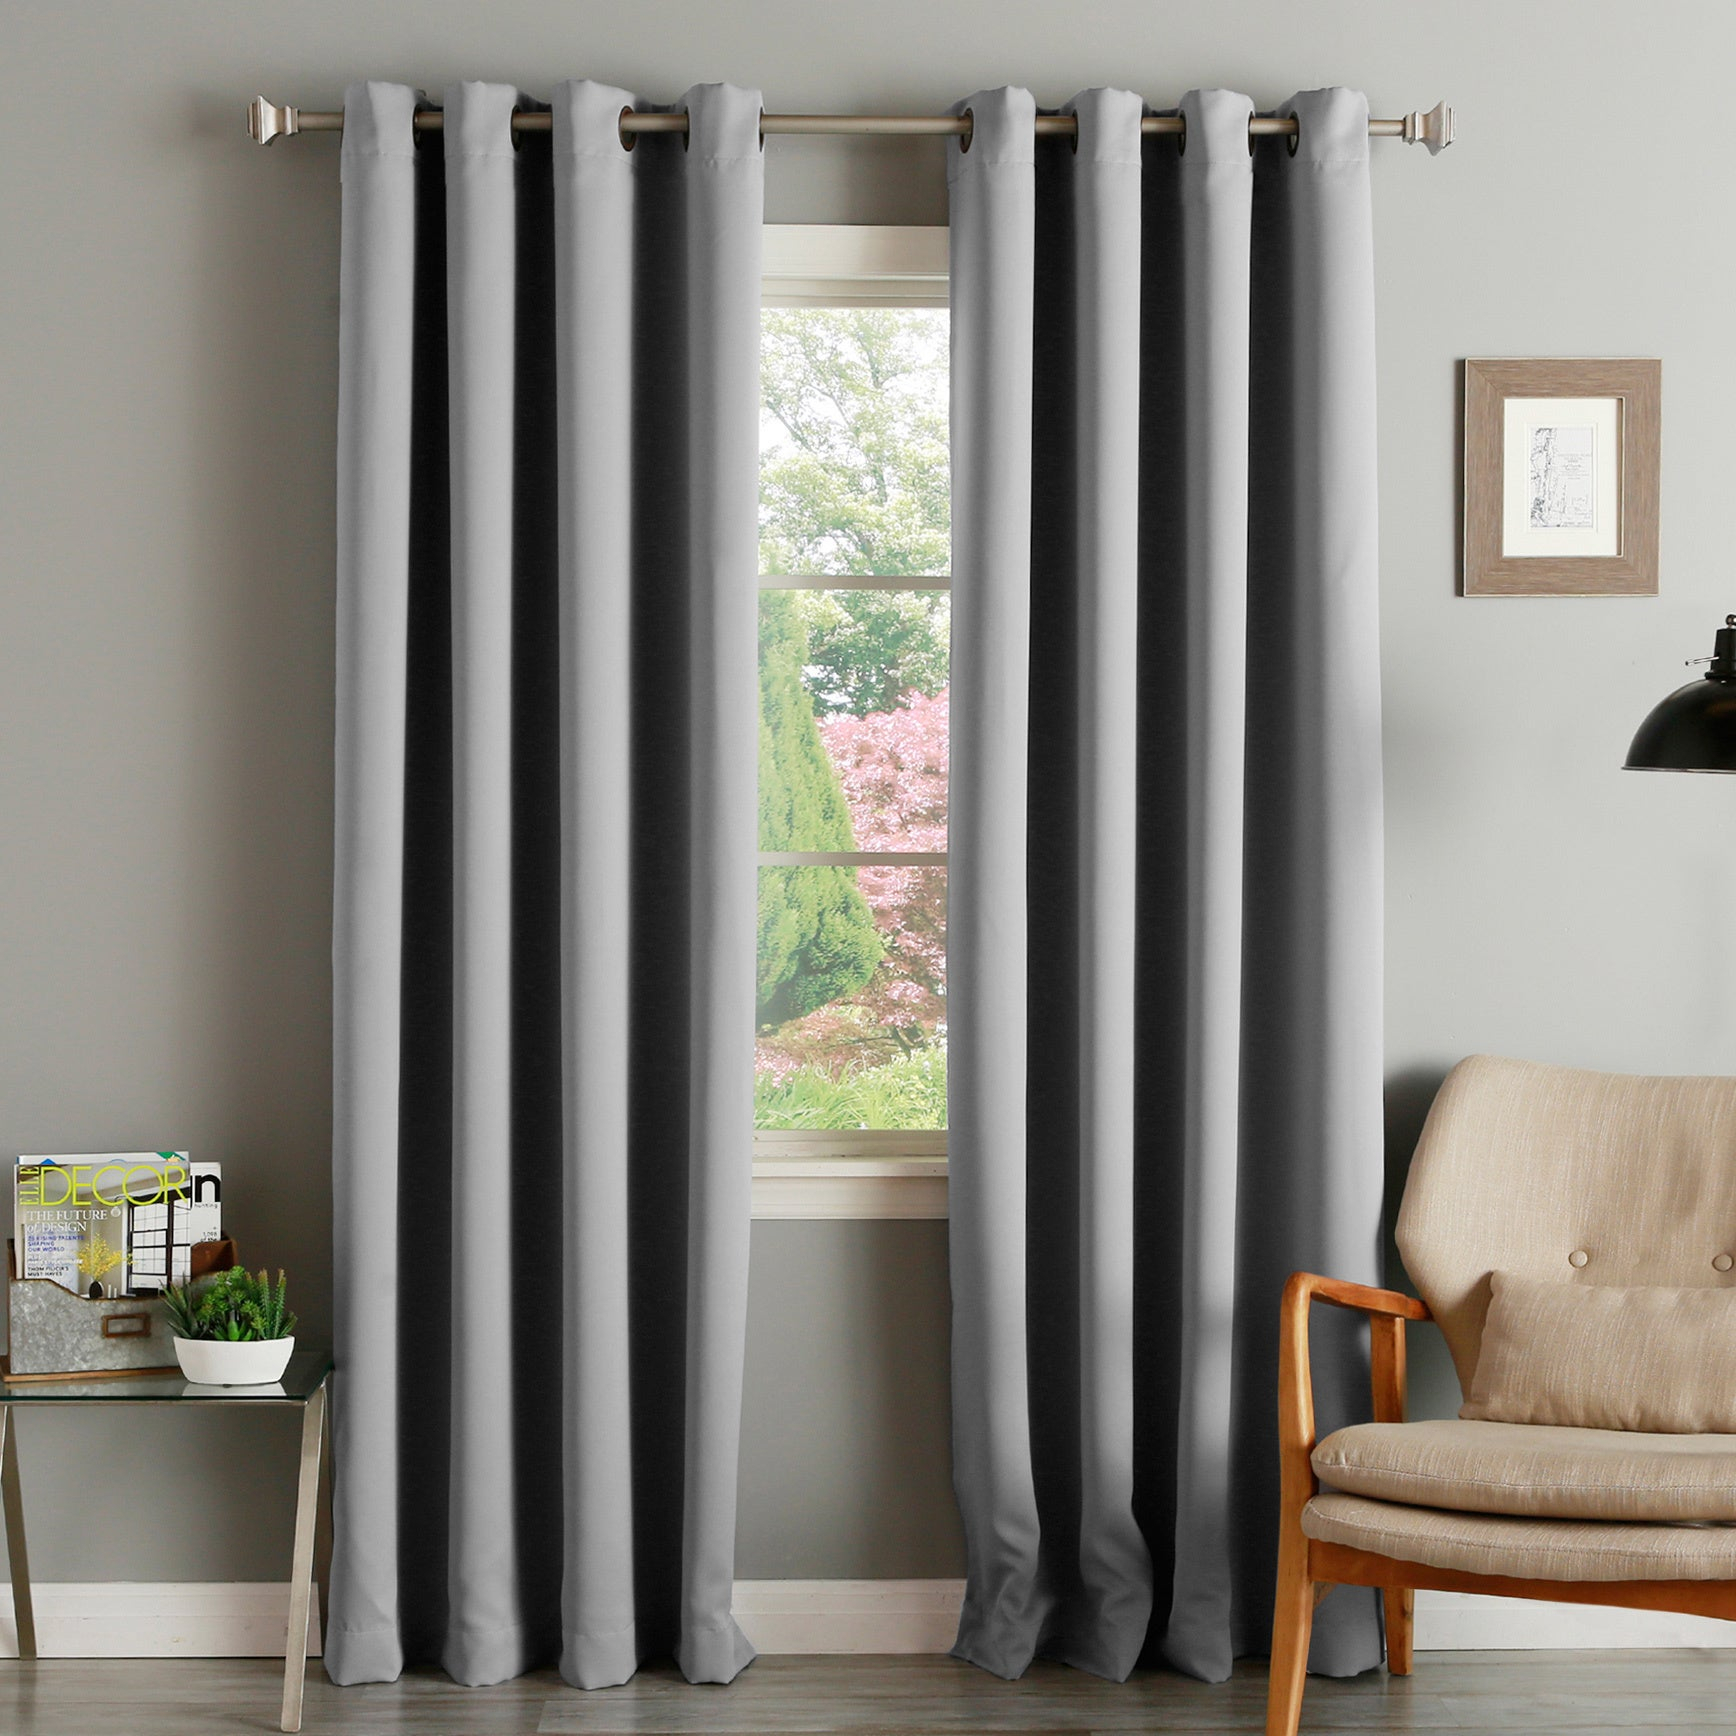 Aurora Home Thermal Insulated Blackout Grommet Top Curtain Panel Pair With Thermal Insulated Blackout Curtain Pairs (View 4 of 30)